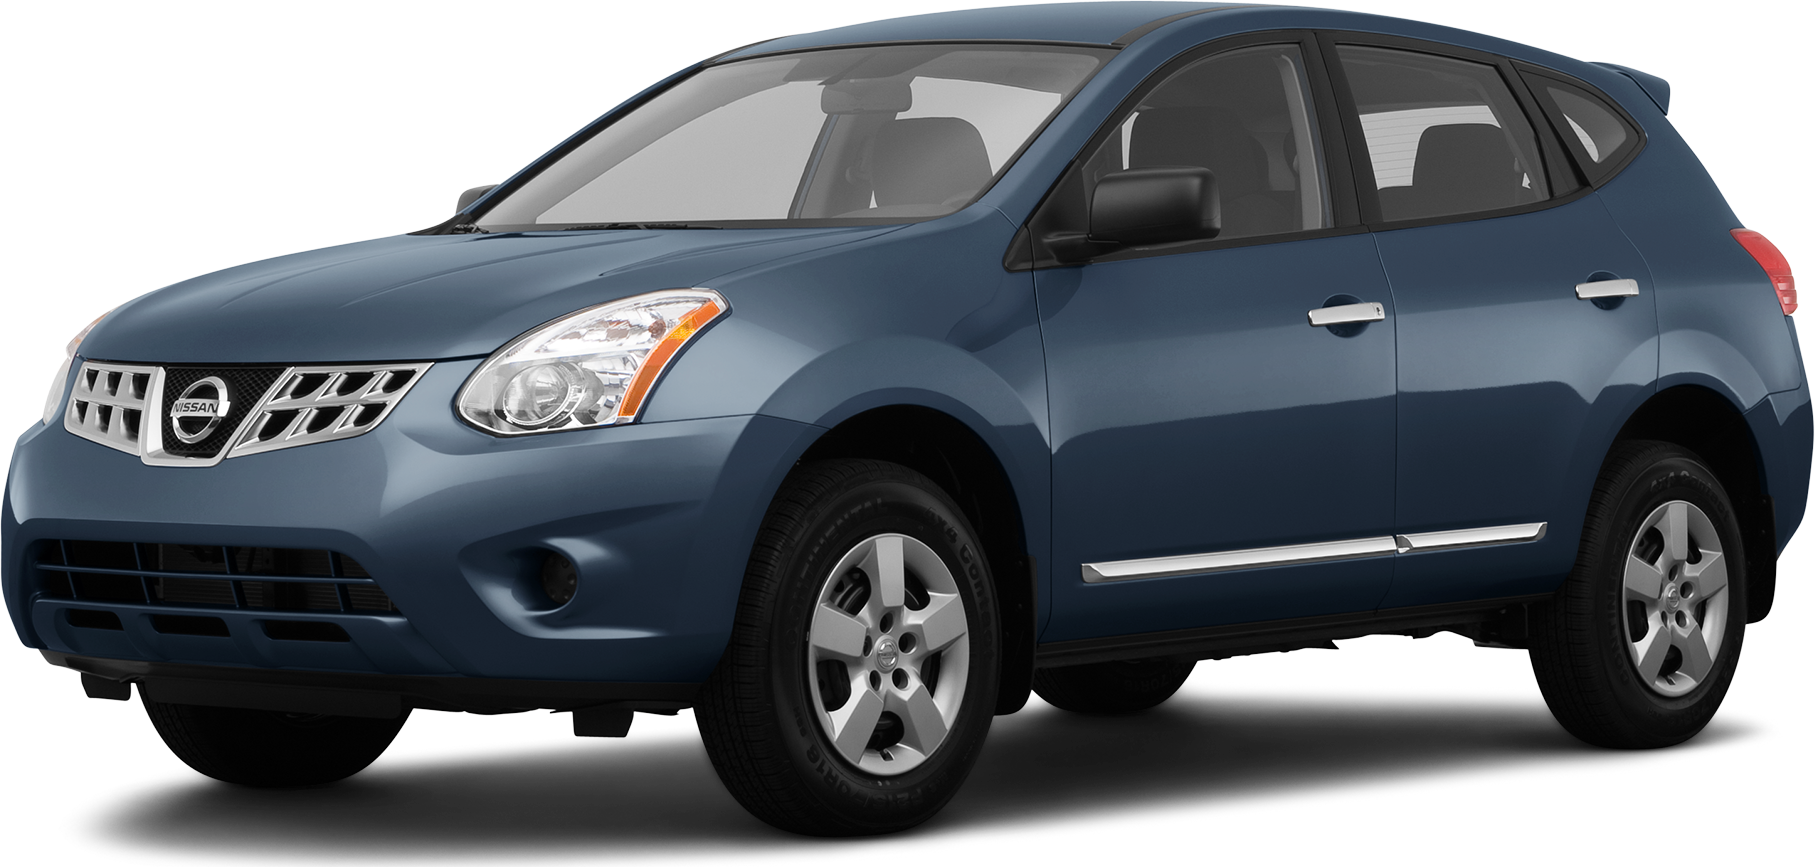 2013 Nissan Rogue Owners Manual with warranty and Navigation guide and case